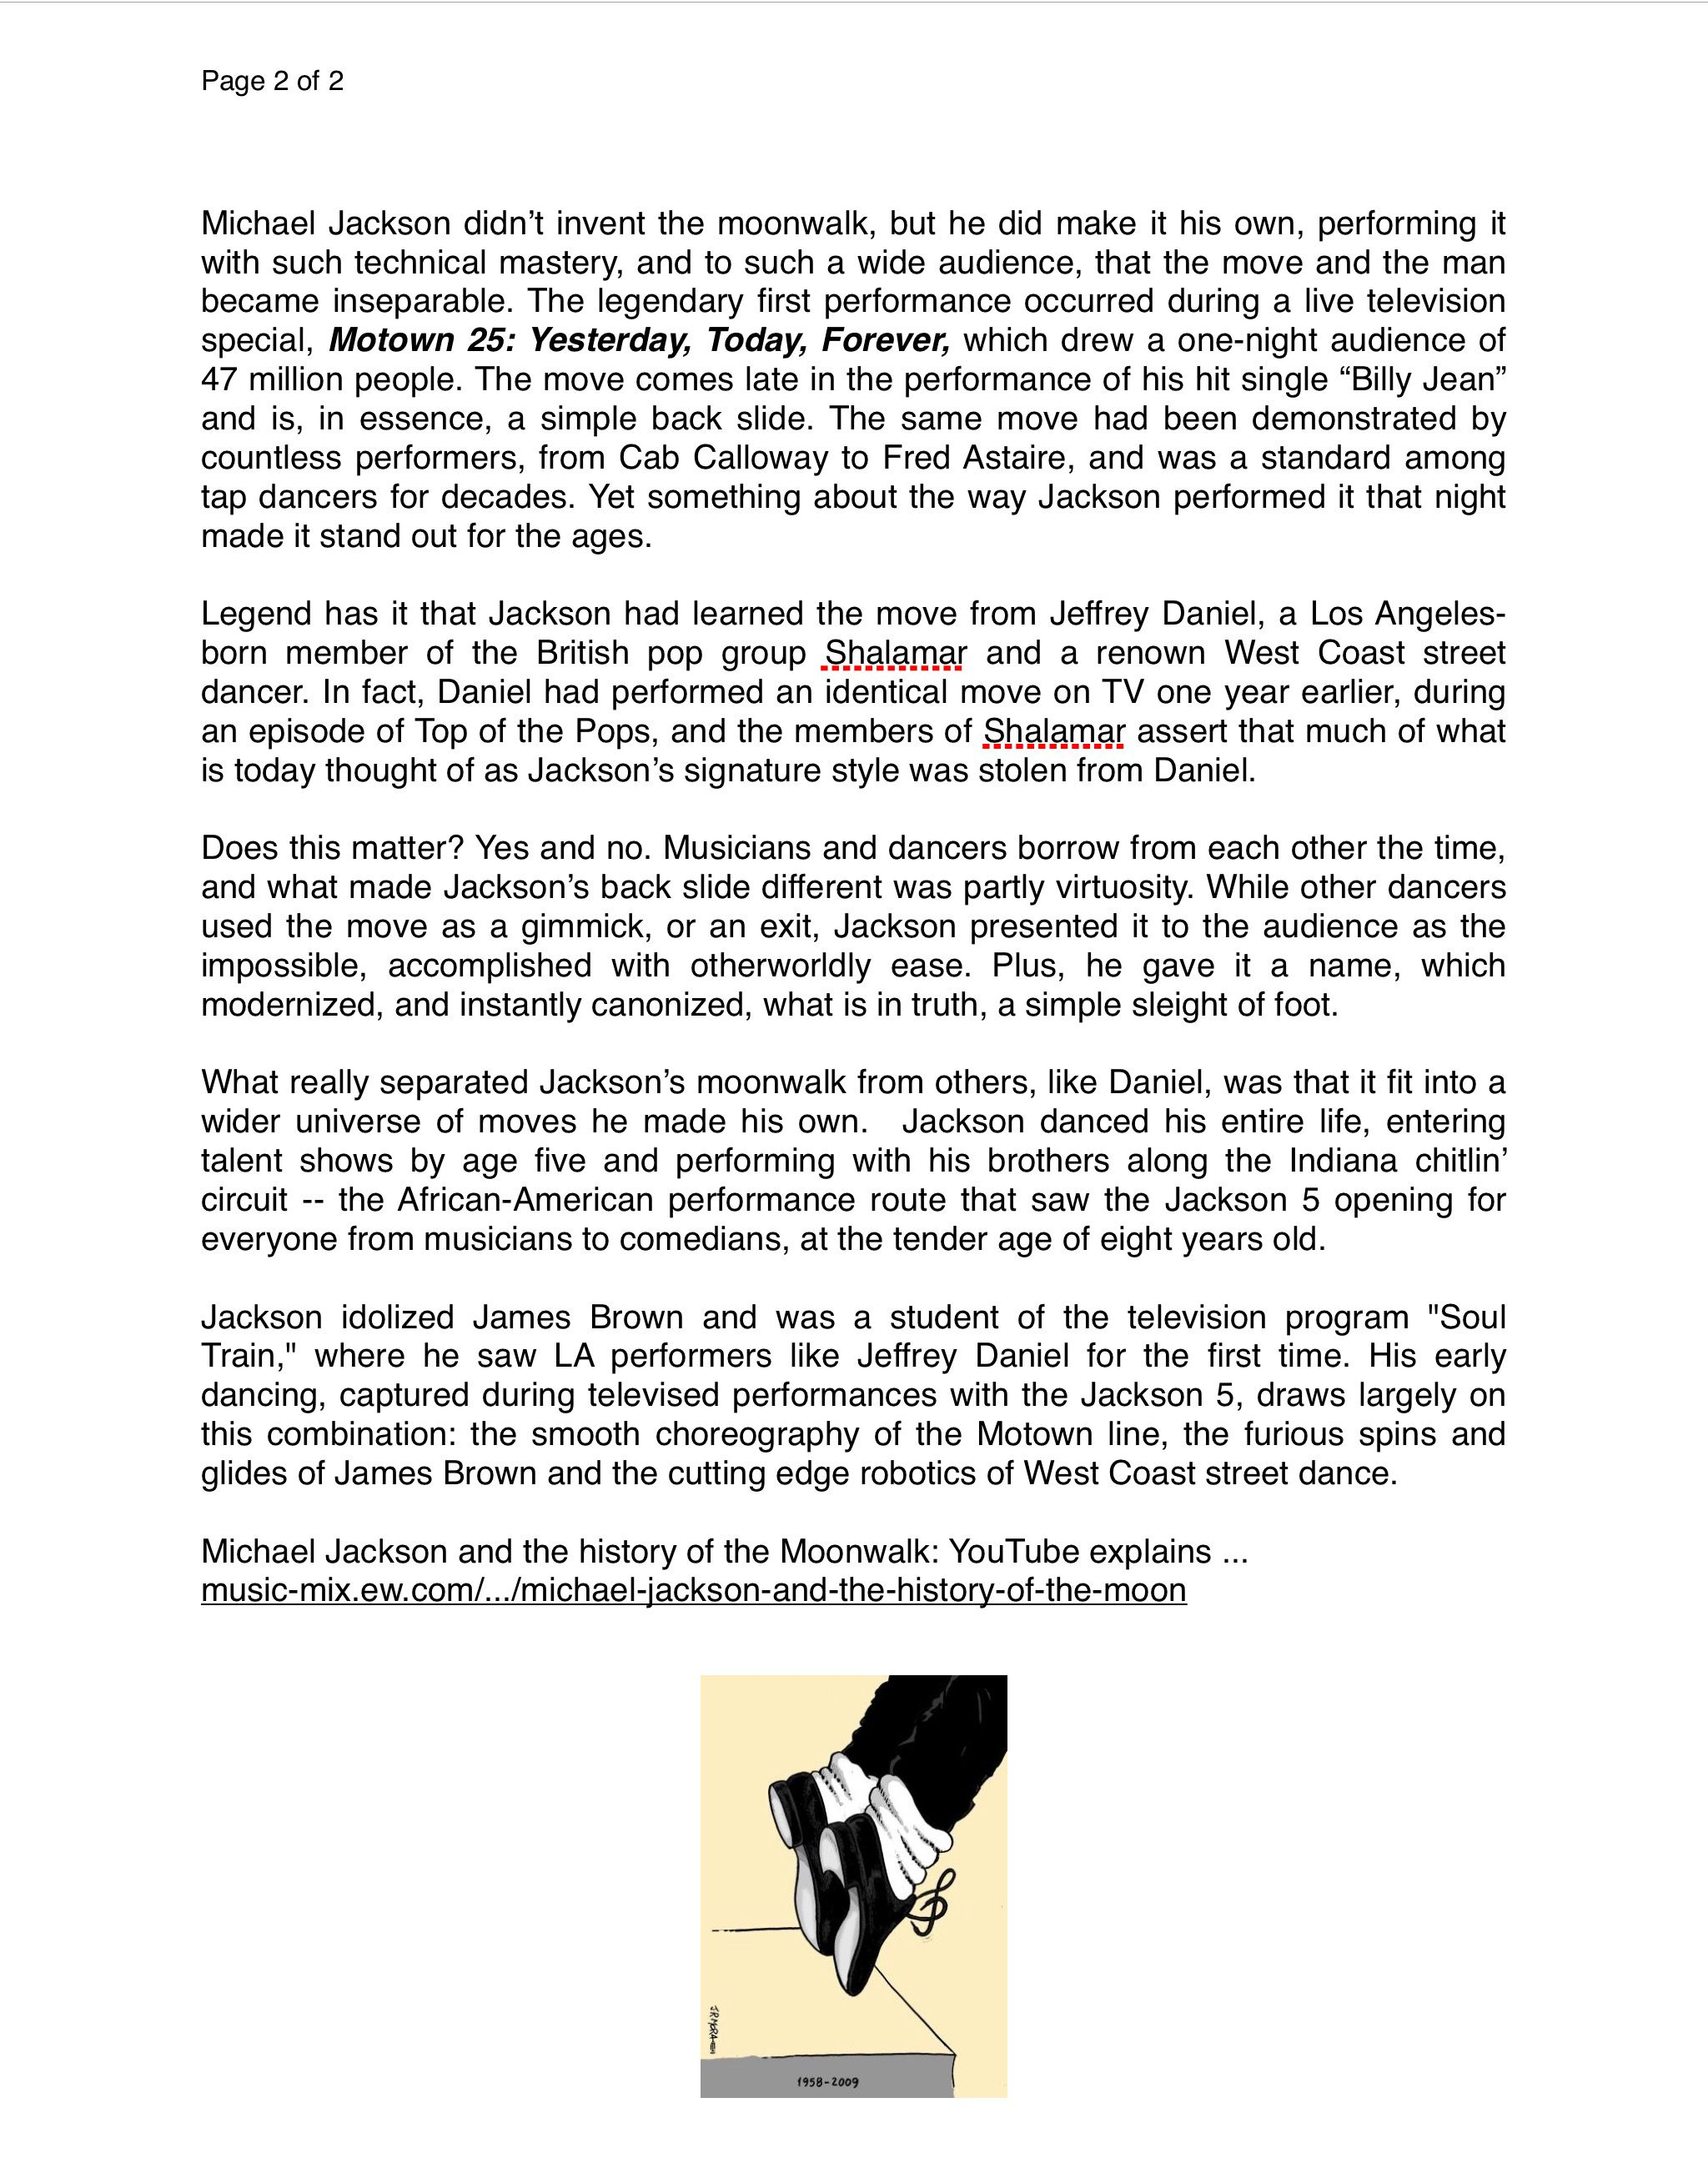 Page 2 The Moonwalk A History Of Michael Jackson S